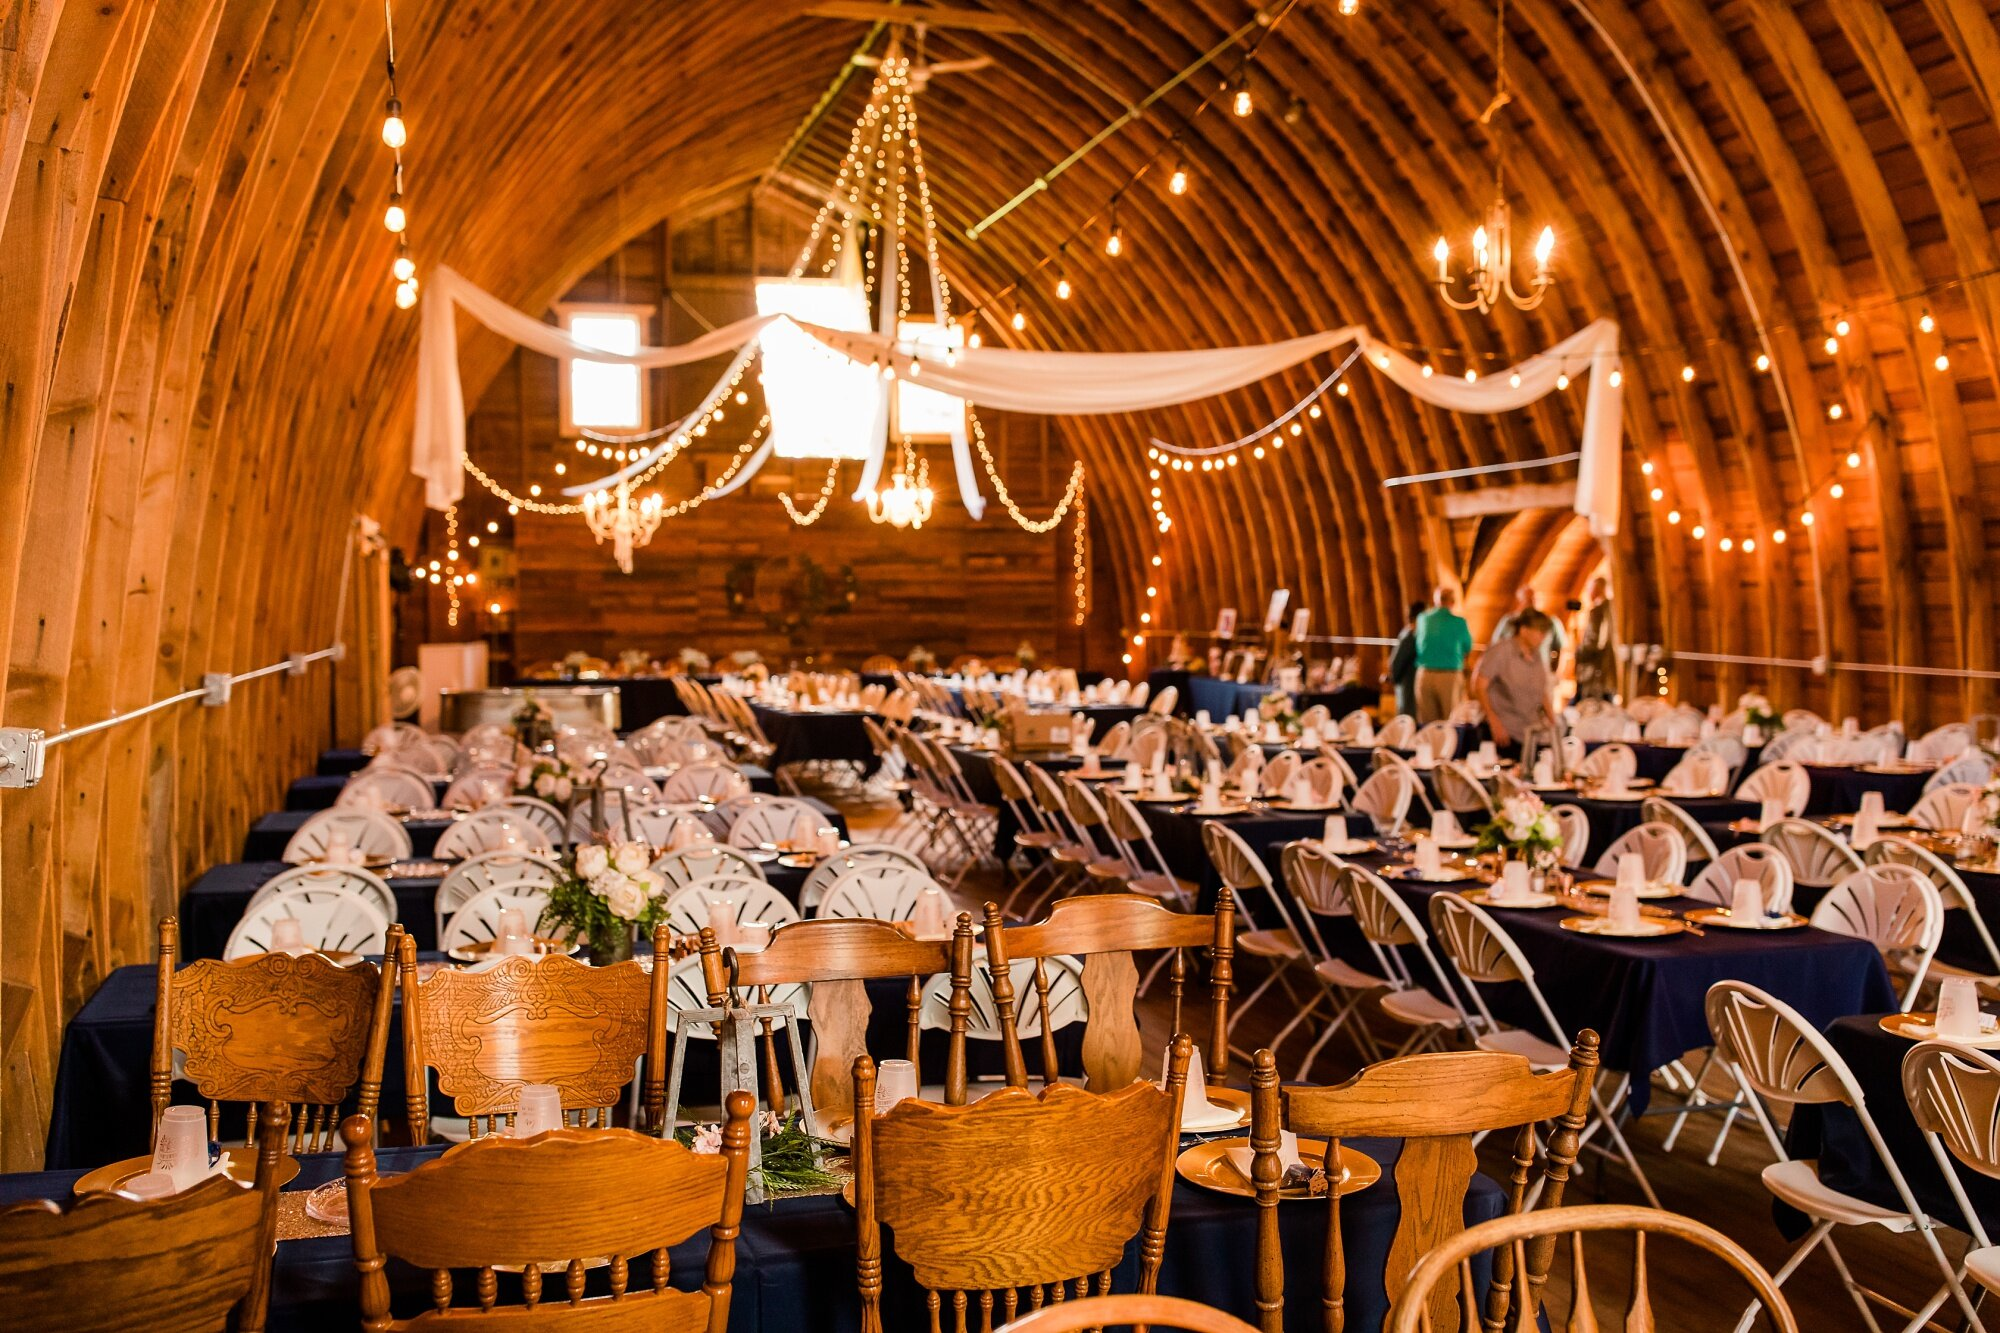 Amber Langerud Photography_Lake Park Minnesota, Outdoor Barn Wedding With Horses_7012.jpg